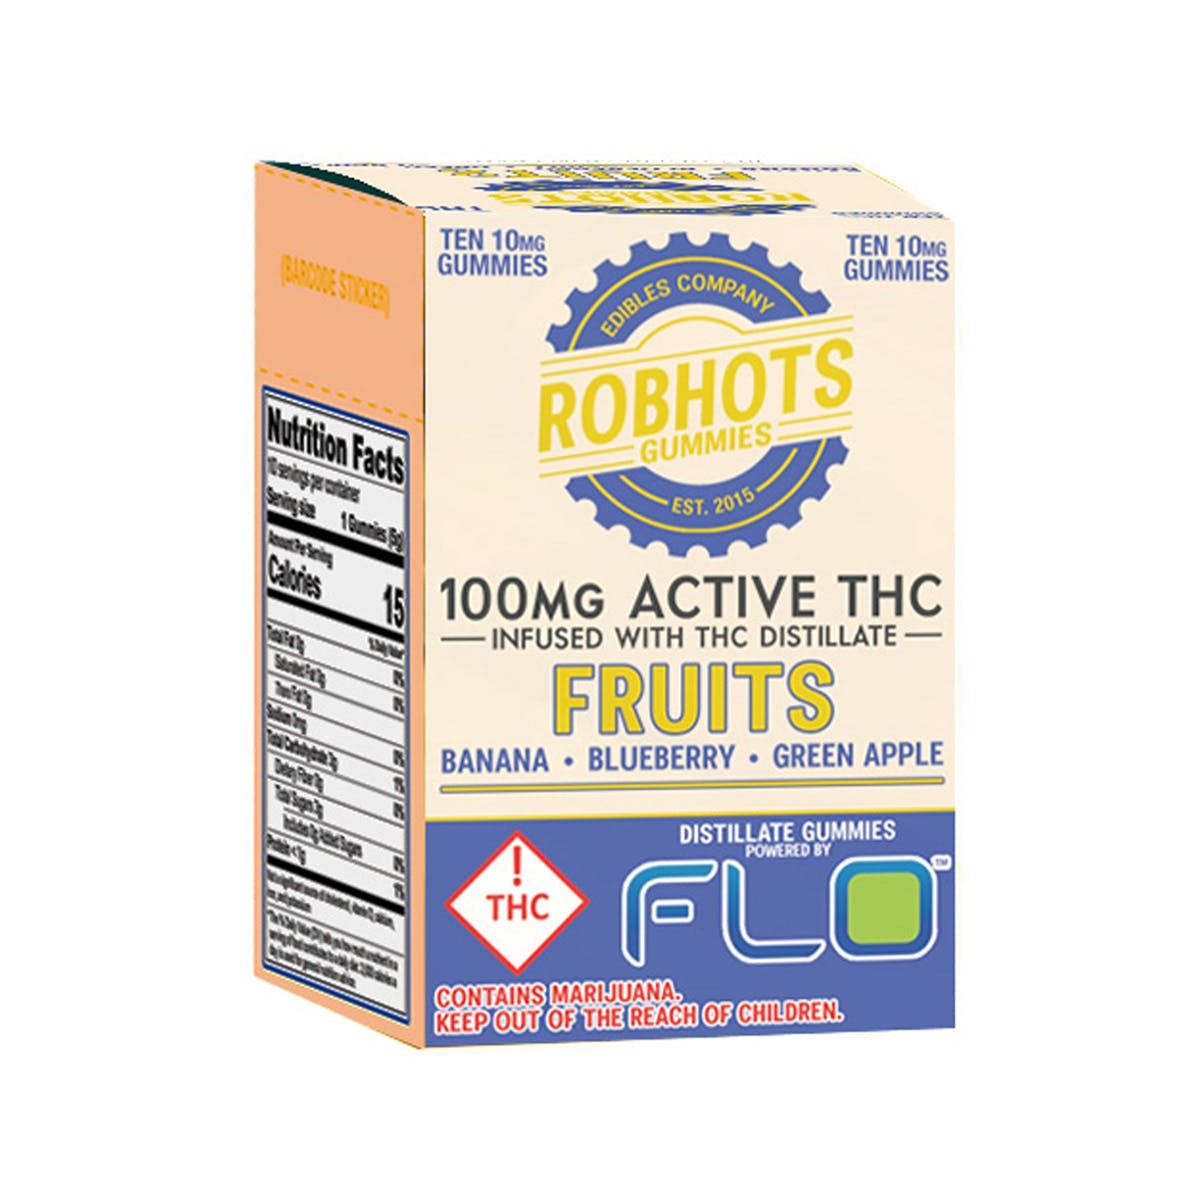 marijuana-dispensaries-high-level-health-dumont-in-downieville-fruits-100mg-robhots-gummy-multipack-rec